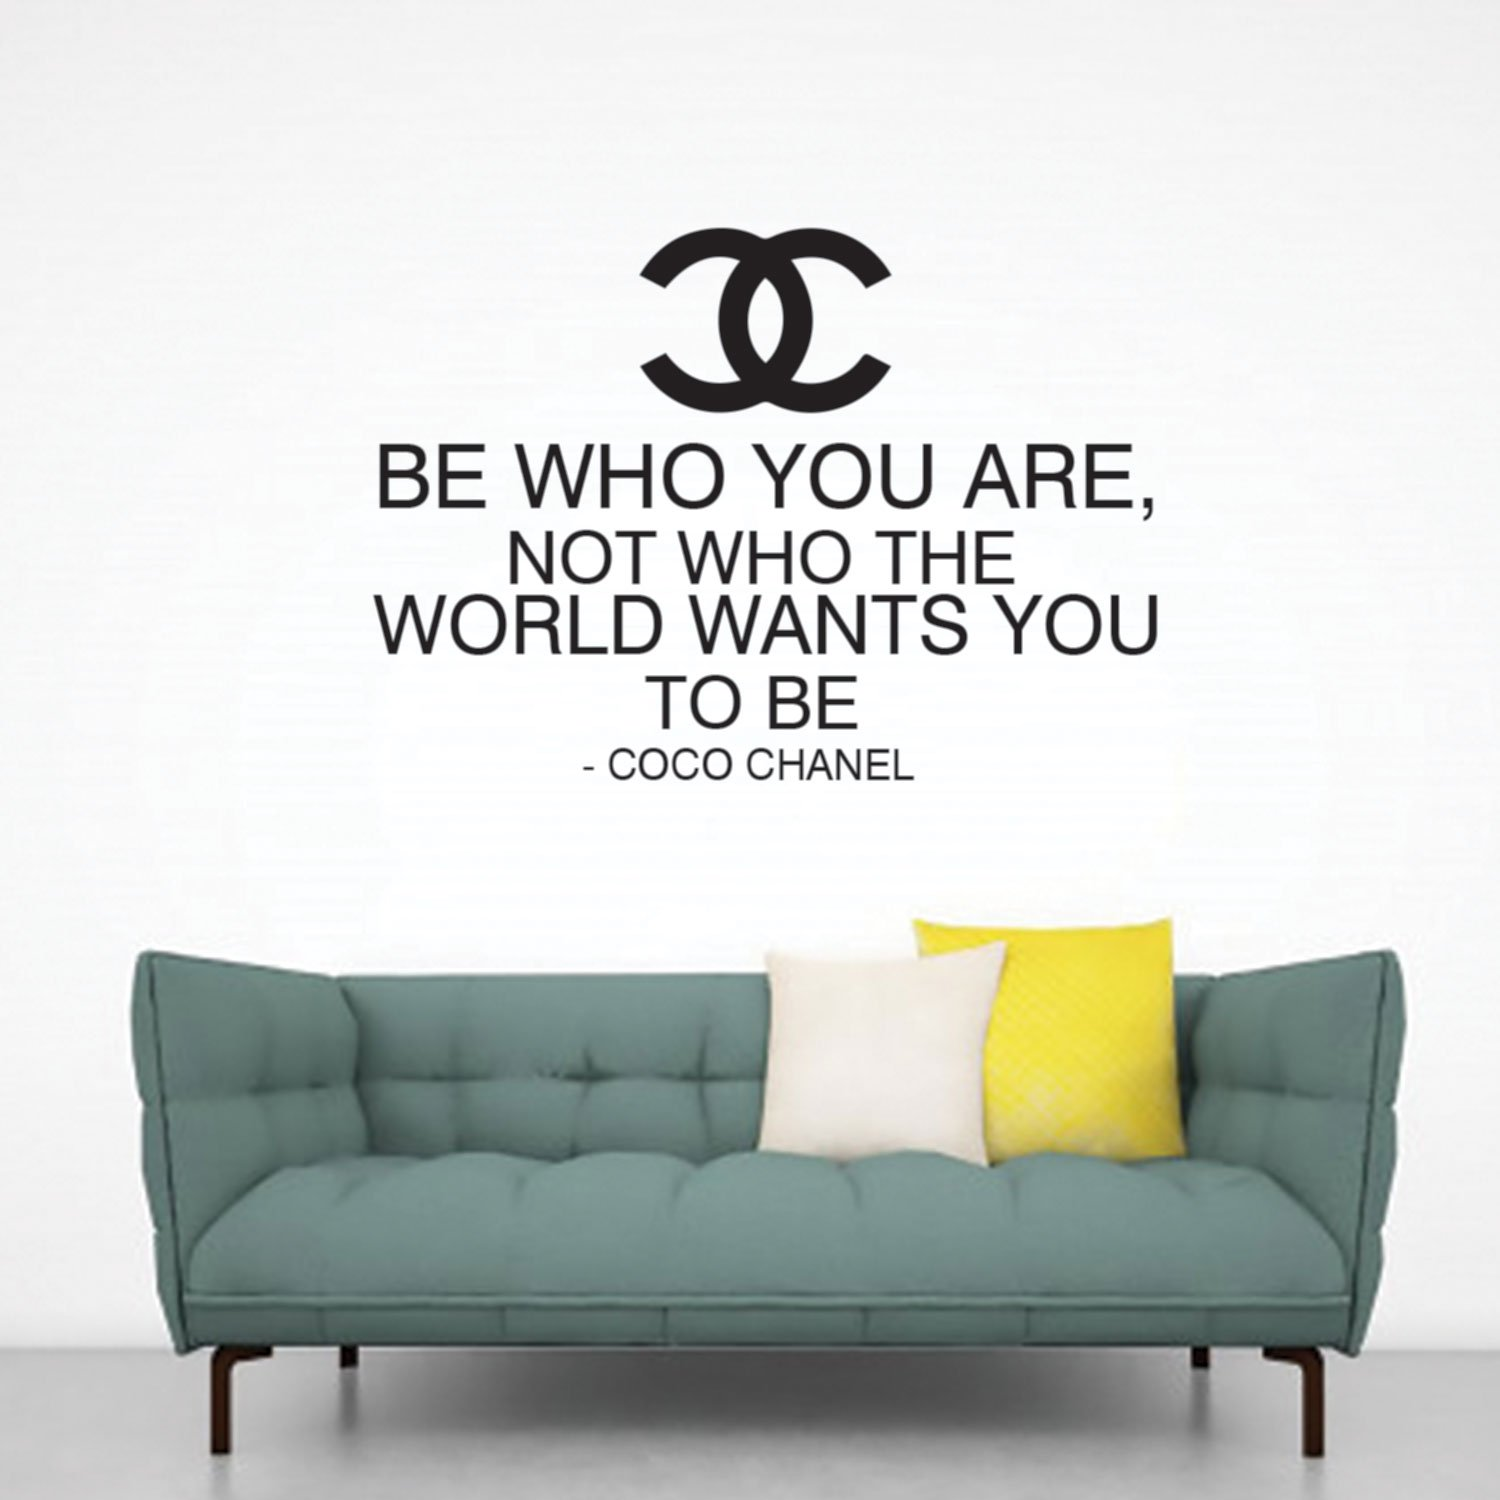 "Be Who You Are Not Who The World Wants You To Be - Coco Chanel Inspirational Quote - Wall Art Decal - 33""x 23"" - Fashion Quotes Vinyl Decal - Bedroom Wall Decoration - Living Room Wall Art Decor"